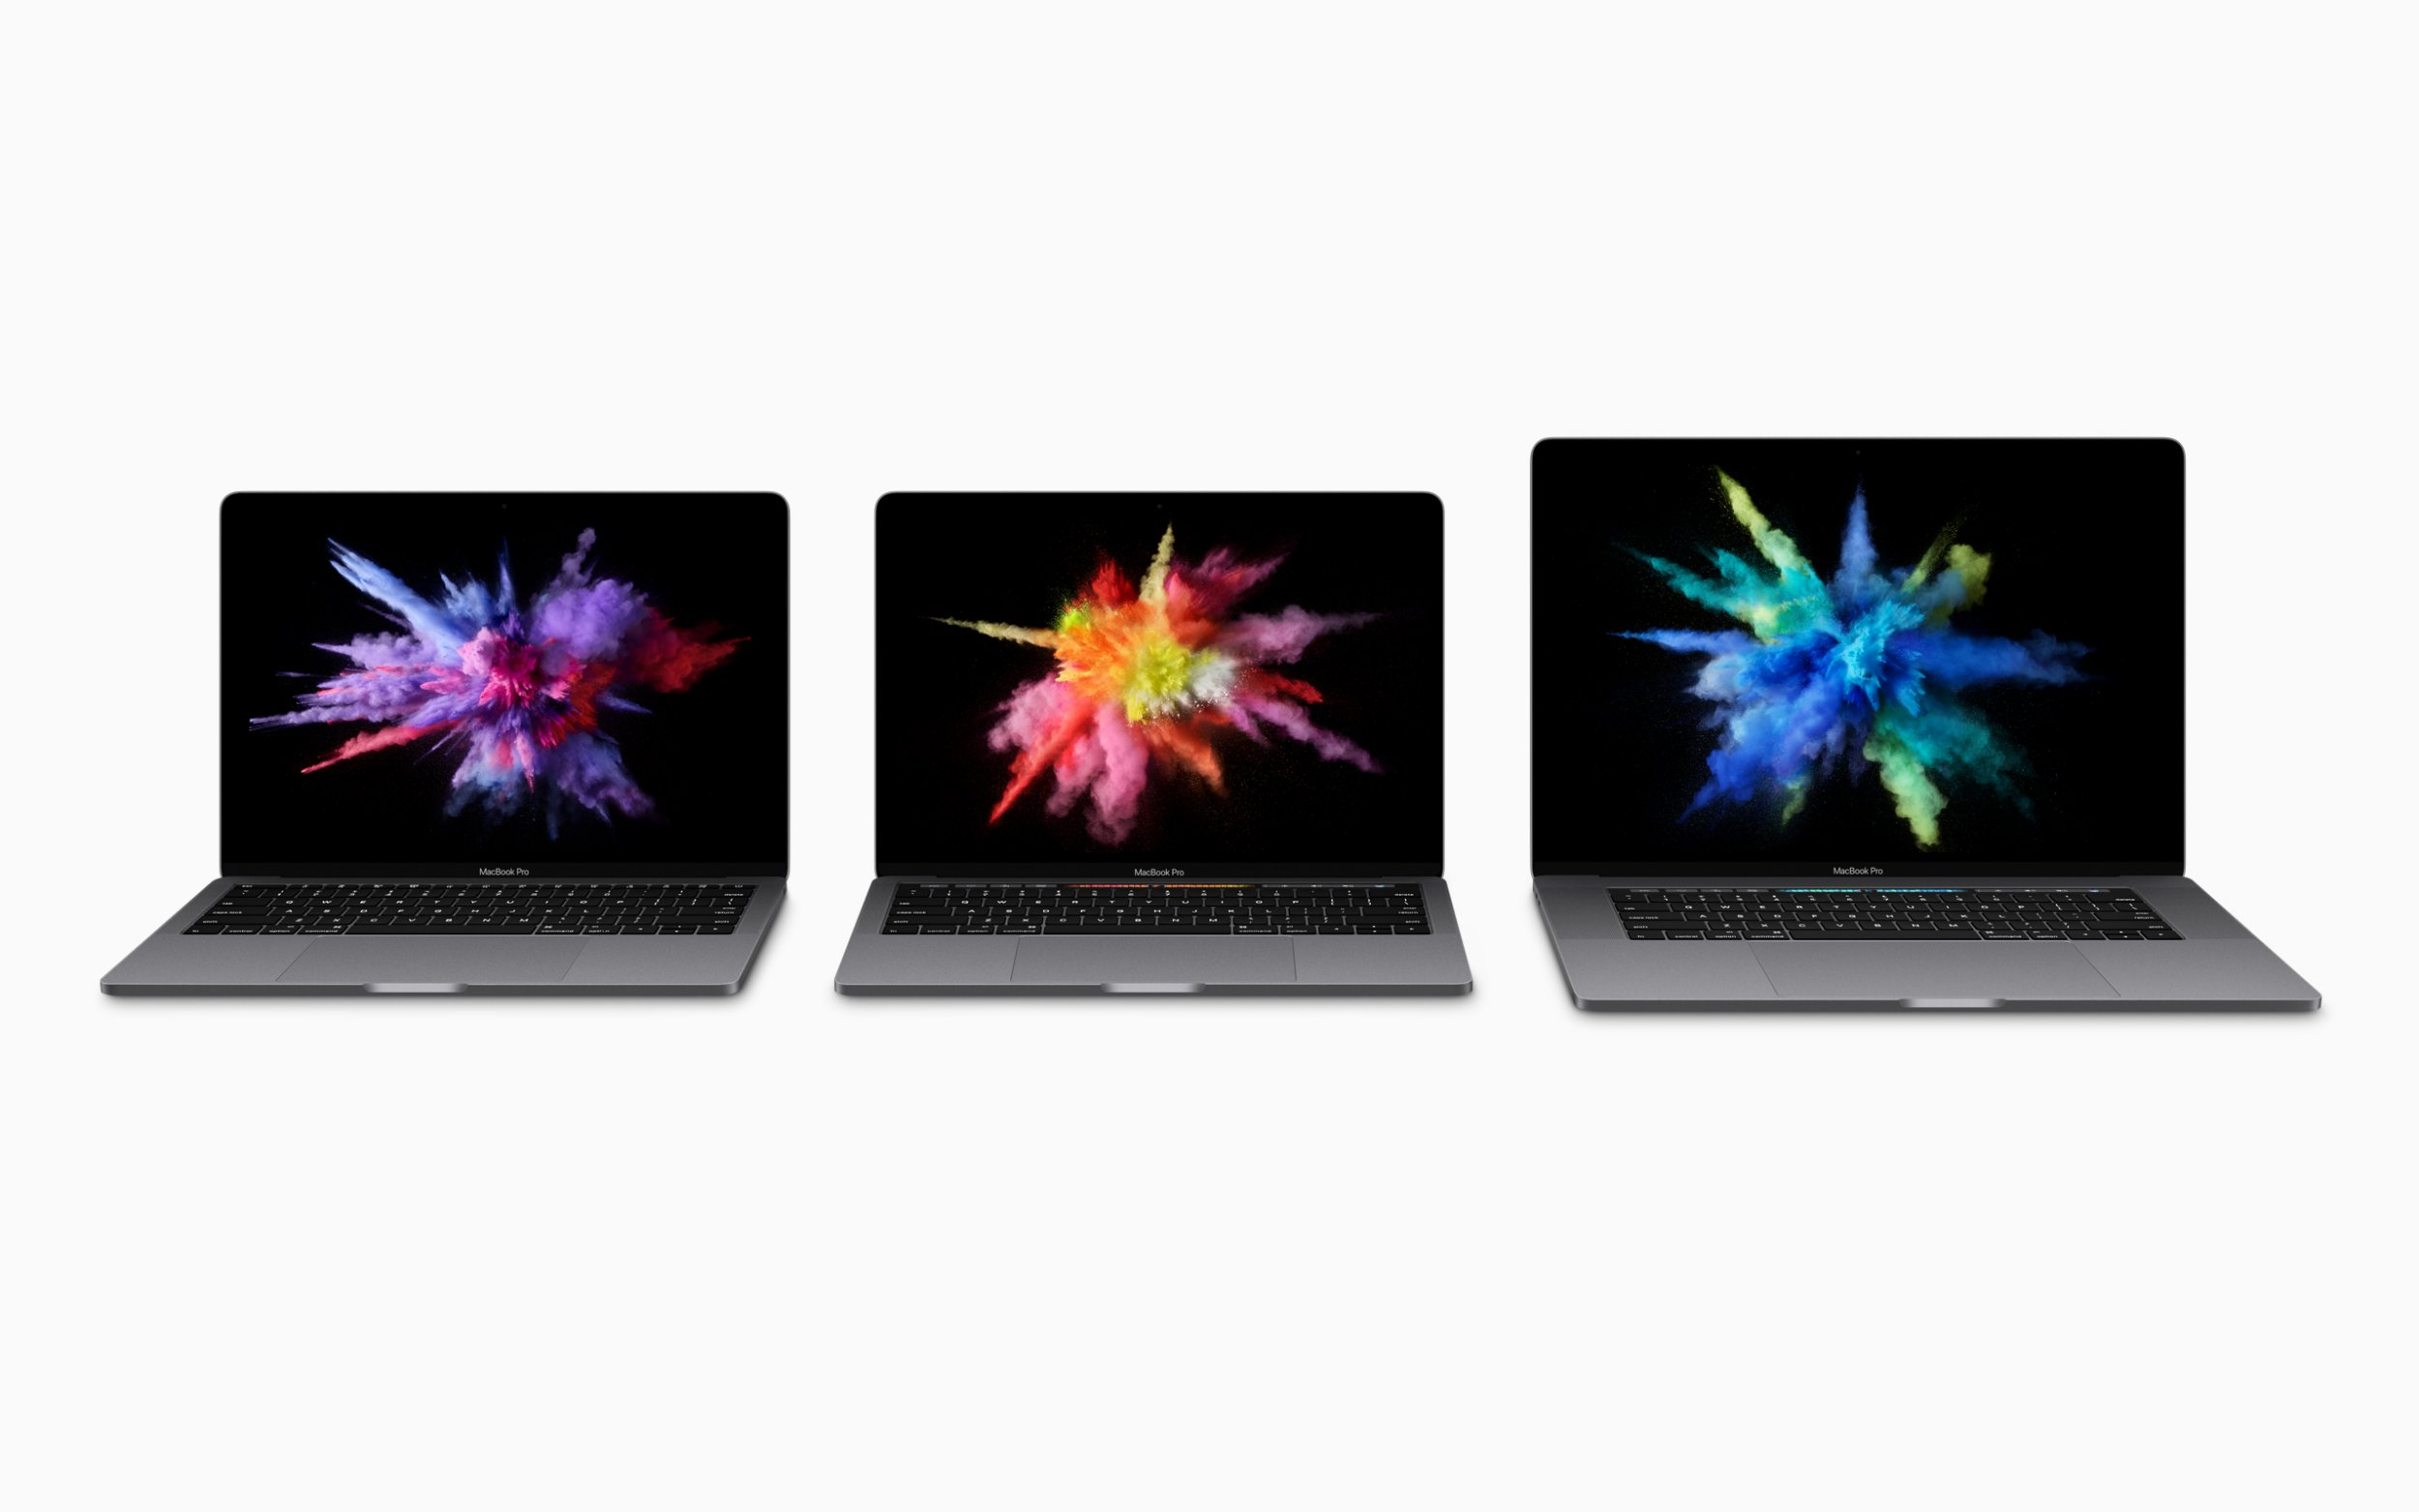 Should you buy a new MacBook Pro today?